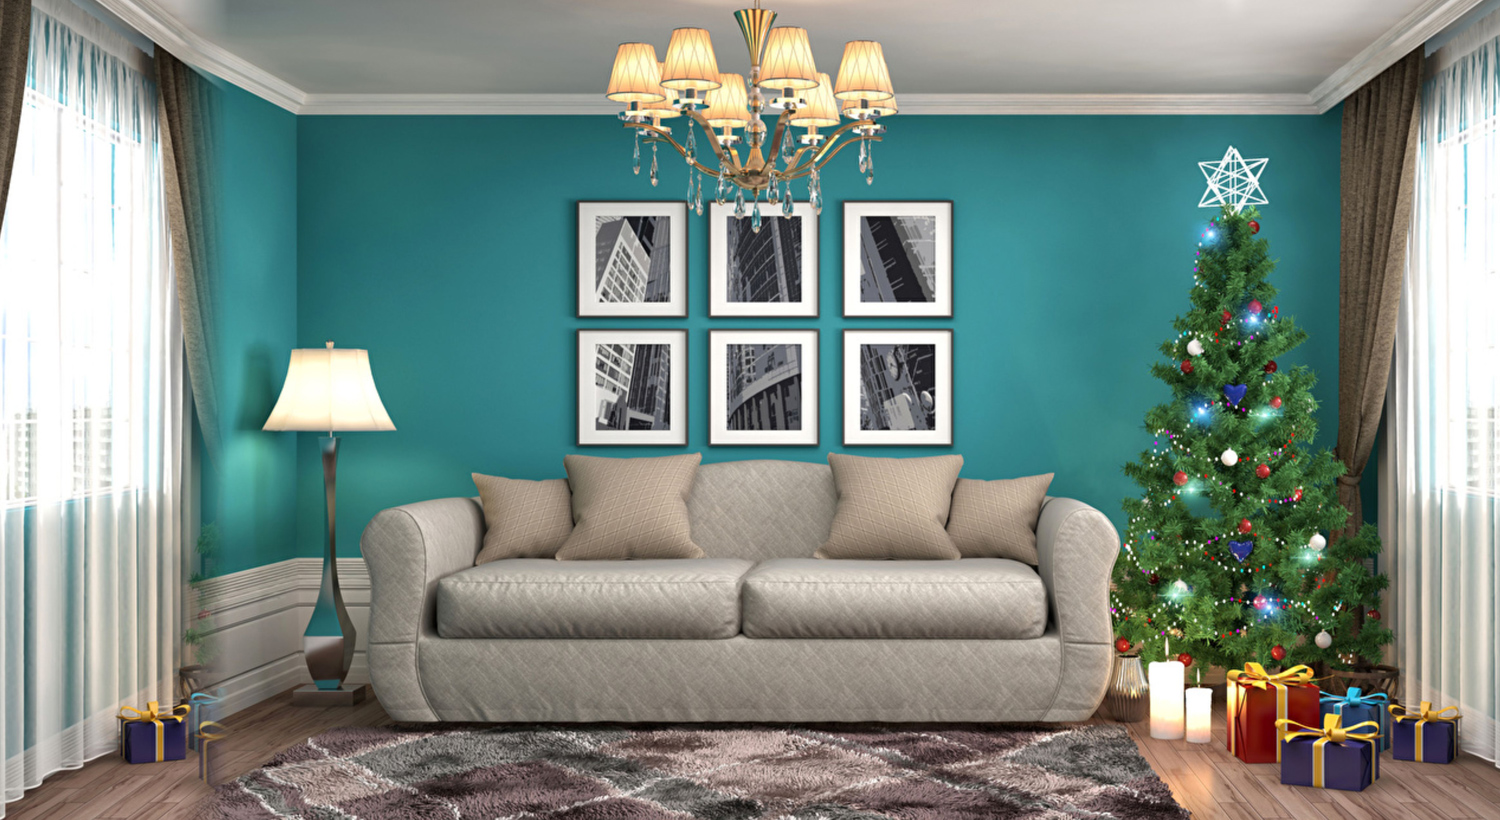 online furniture stores melbourne, australia